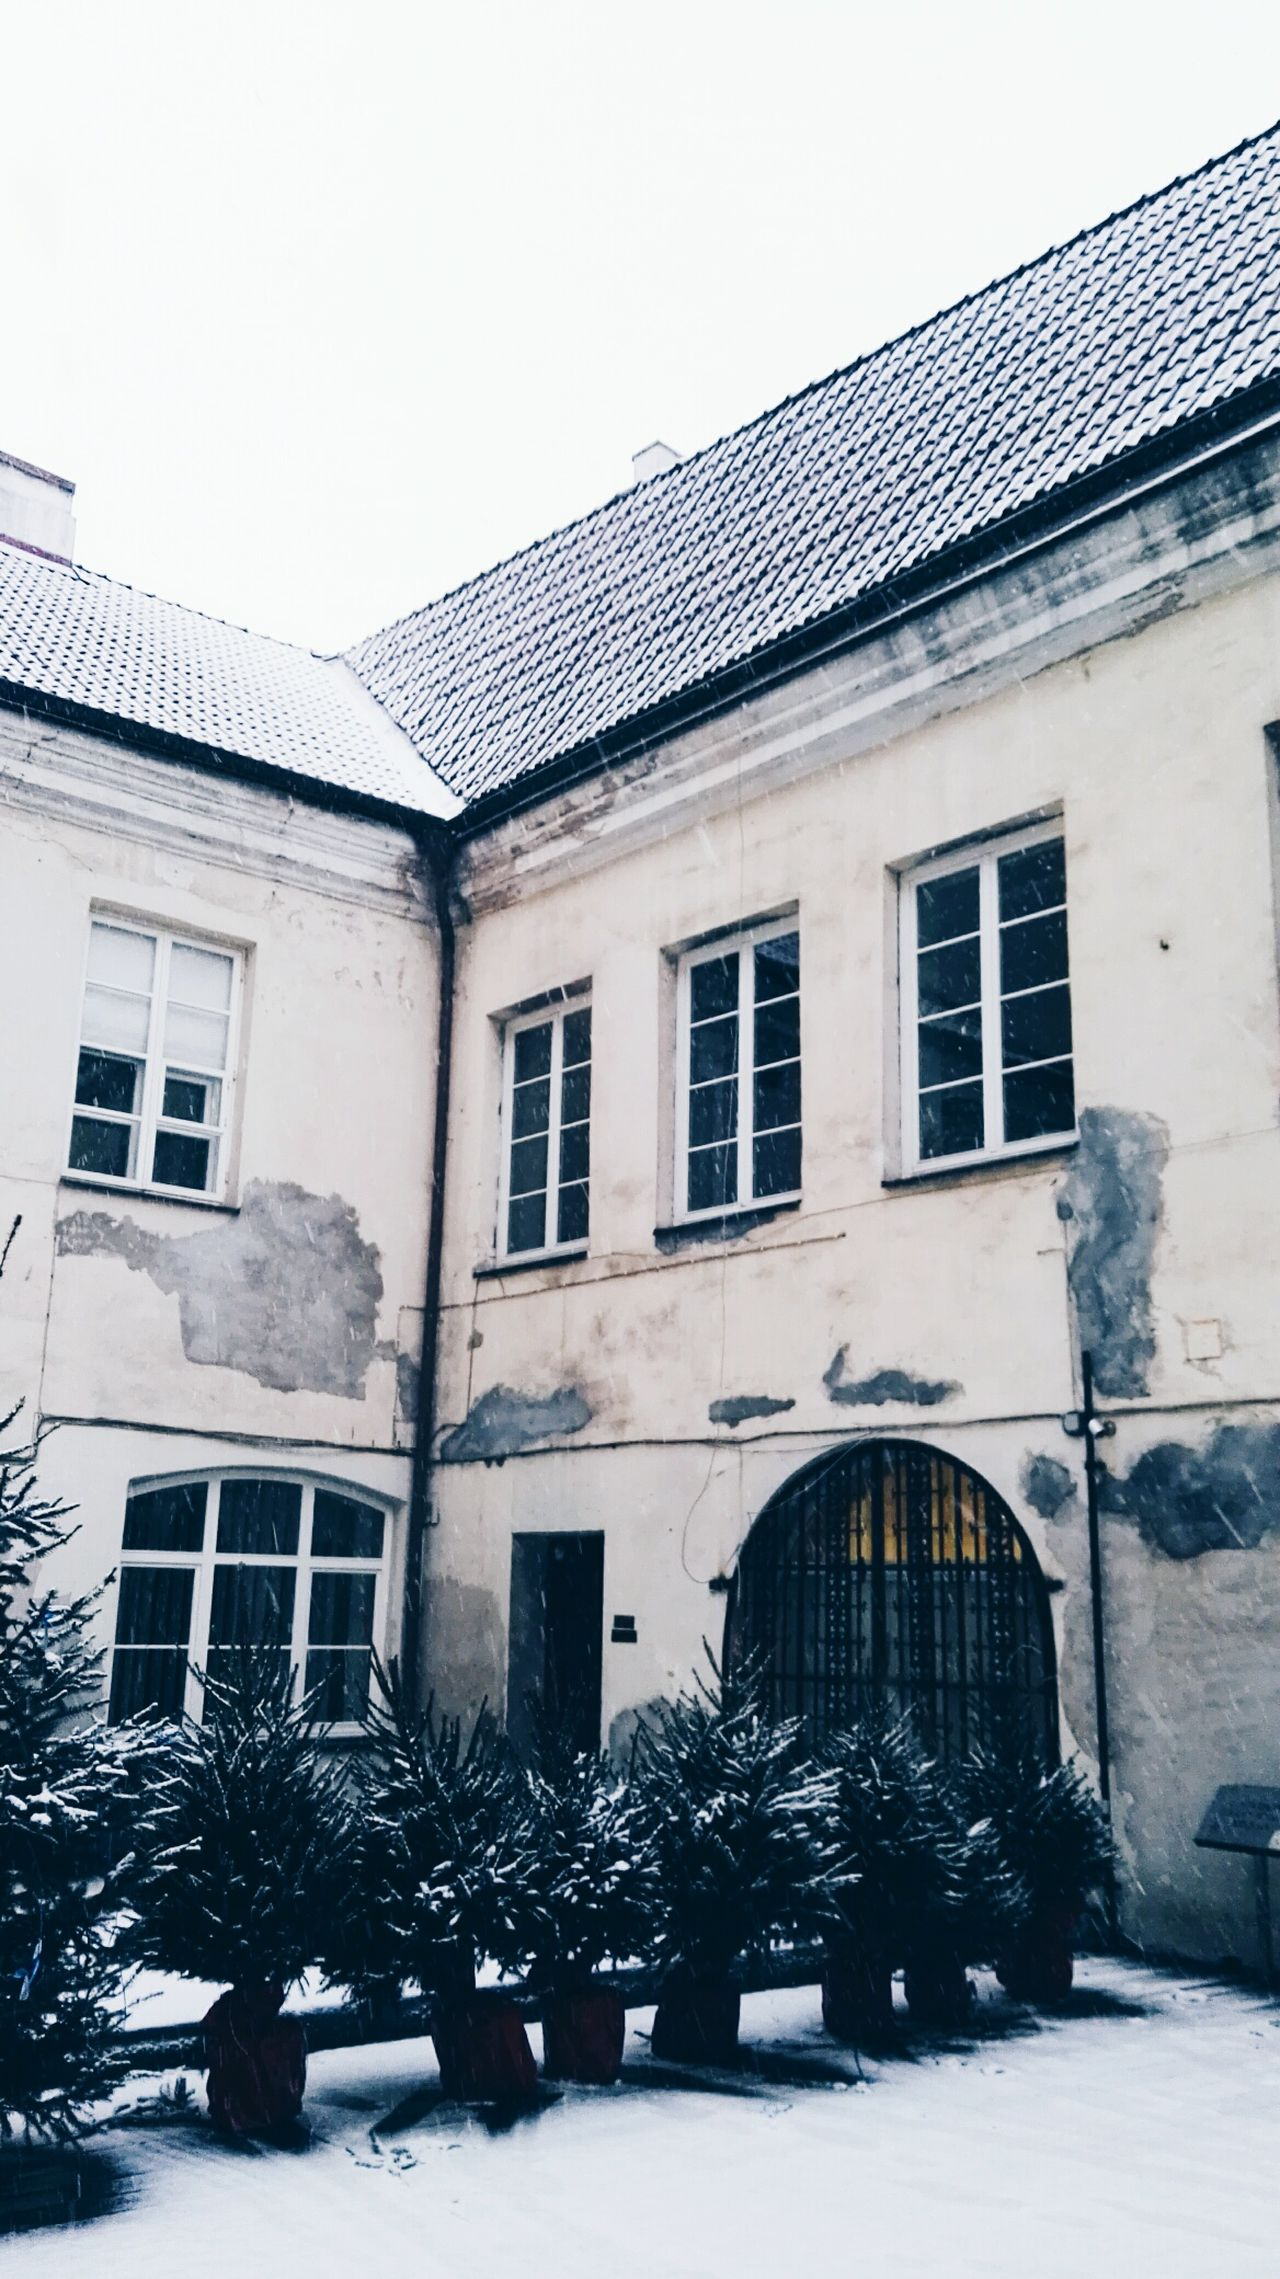 Window Building Exterior Built Structure Outdoors Architecture No People Day Sky Winter Vilnius Lithuania Cold Temperature City Architecture Snowing Snow Outdoor Photography Outdoor Nature Tree Evergreen Christmas Tree Old House University Illuminated